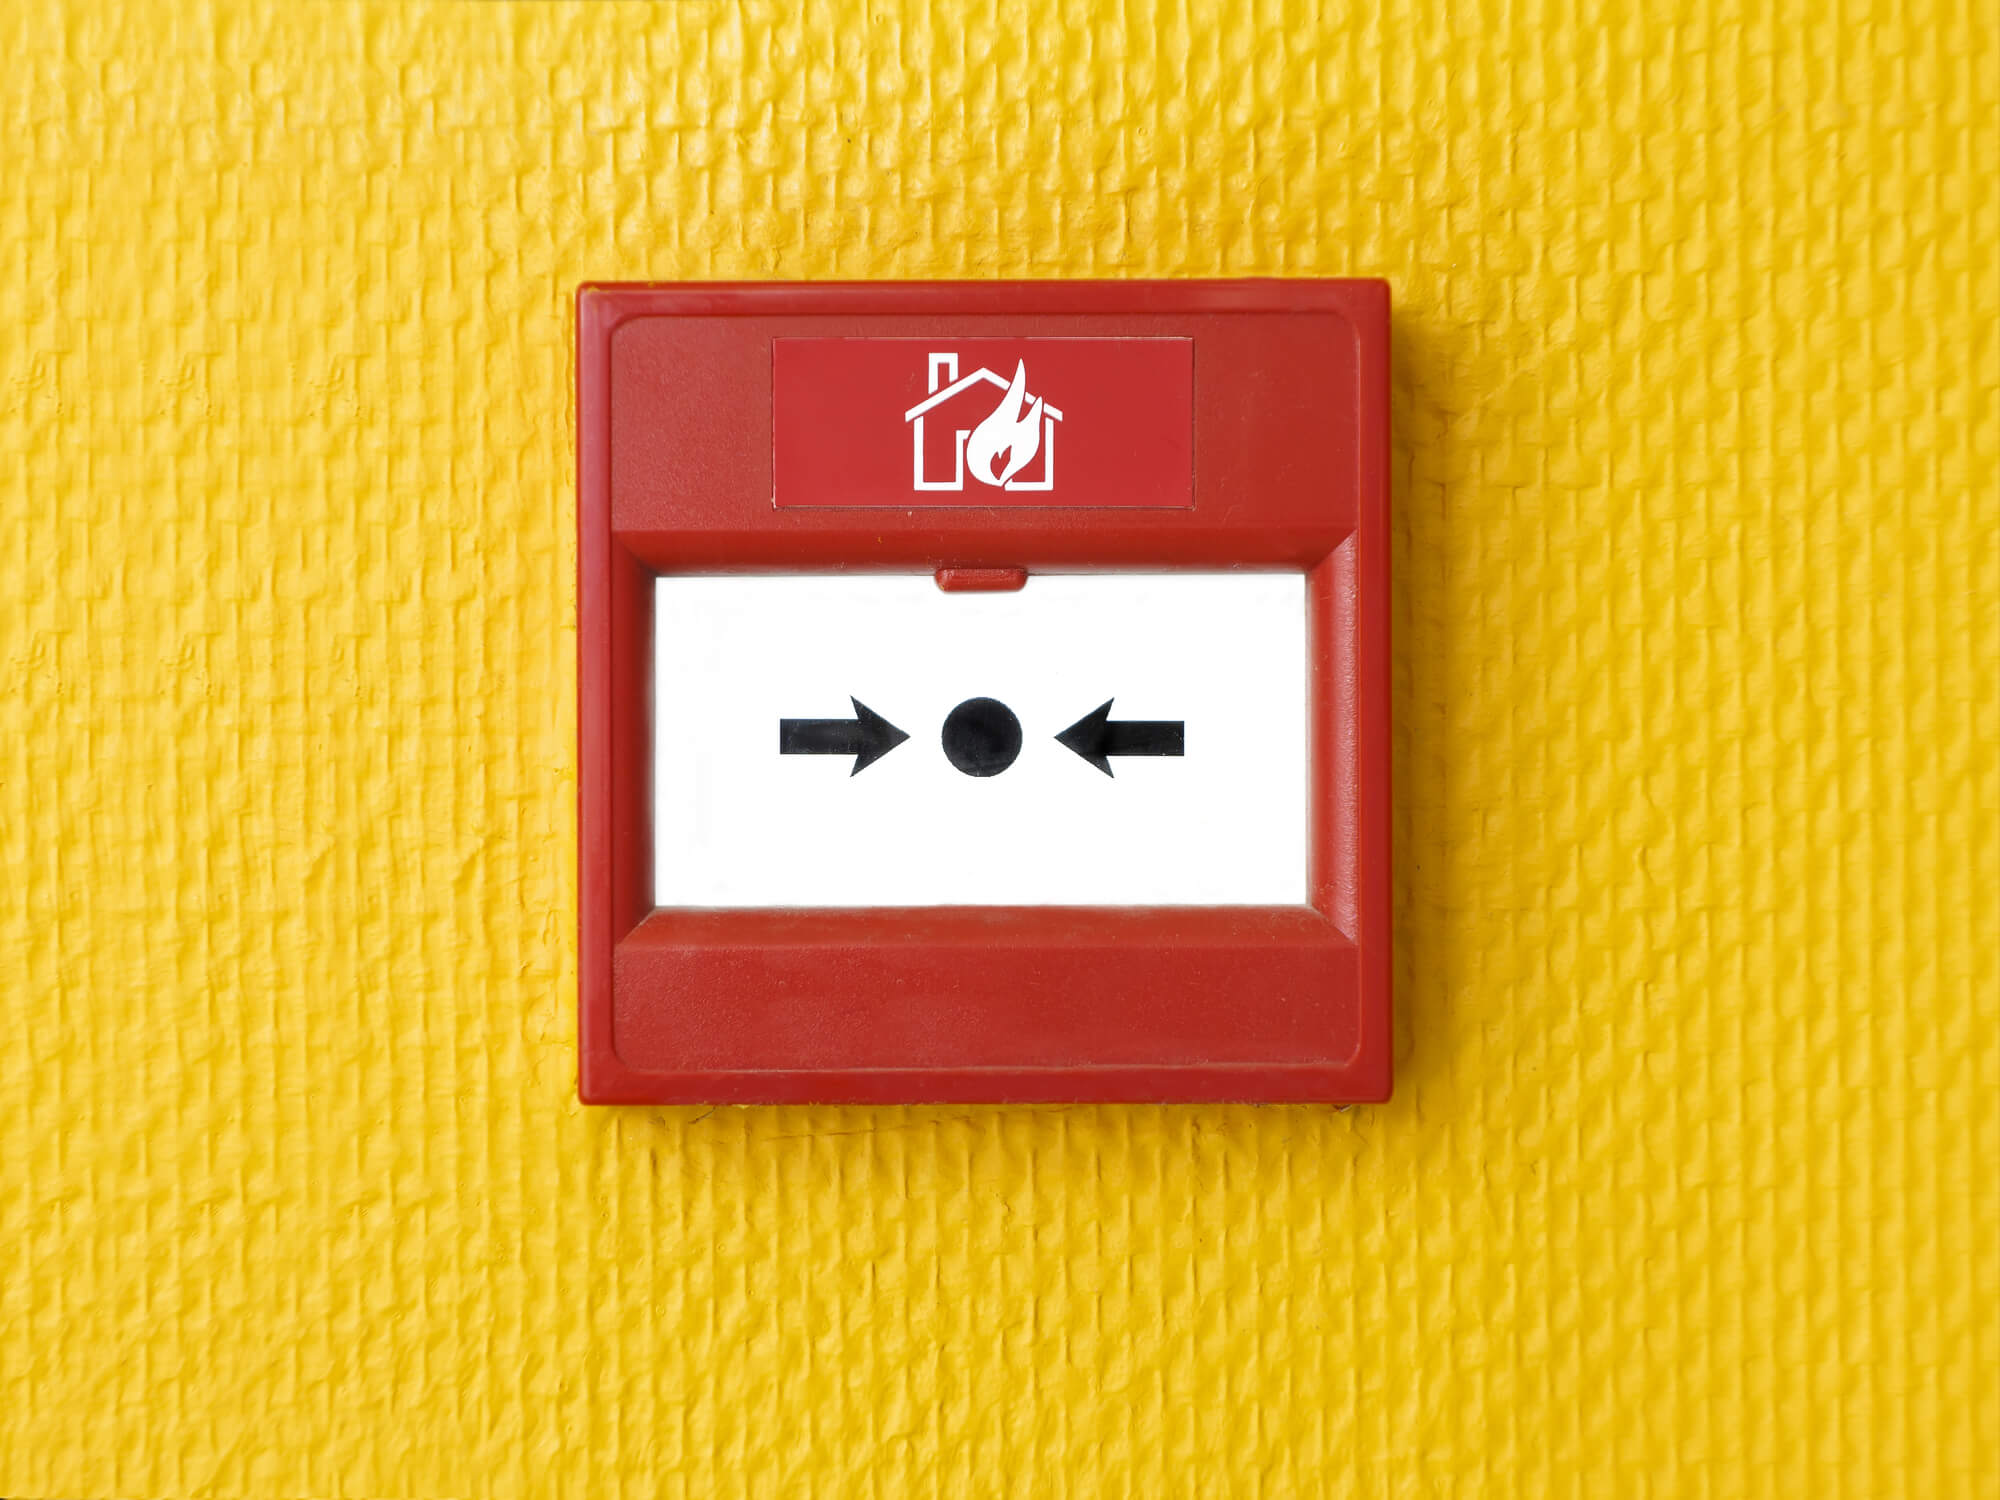 Fire Alarm on yellow wall.